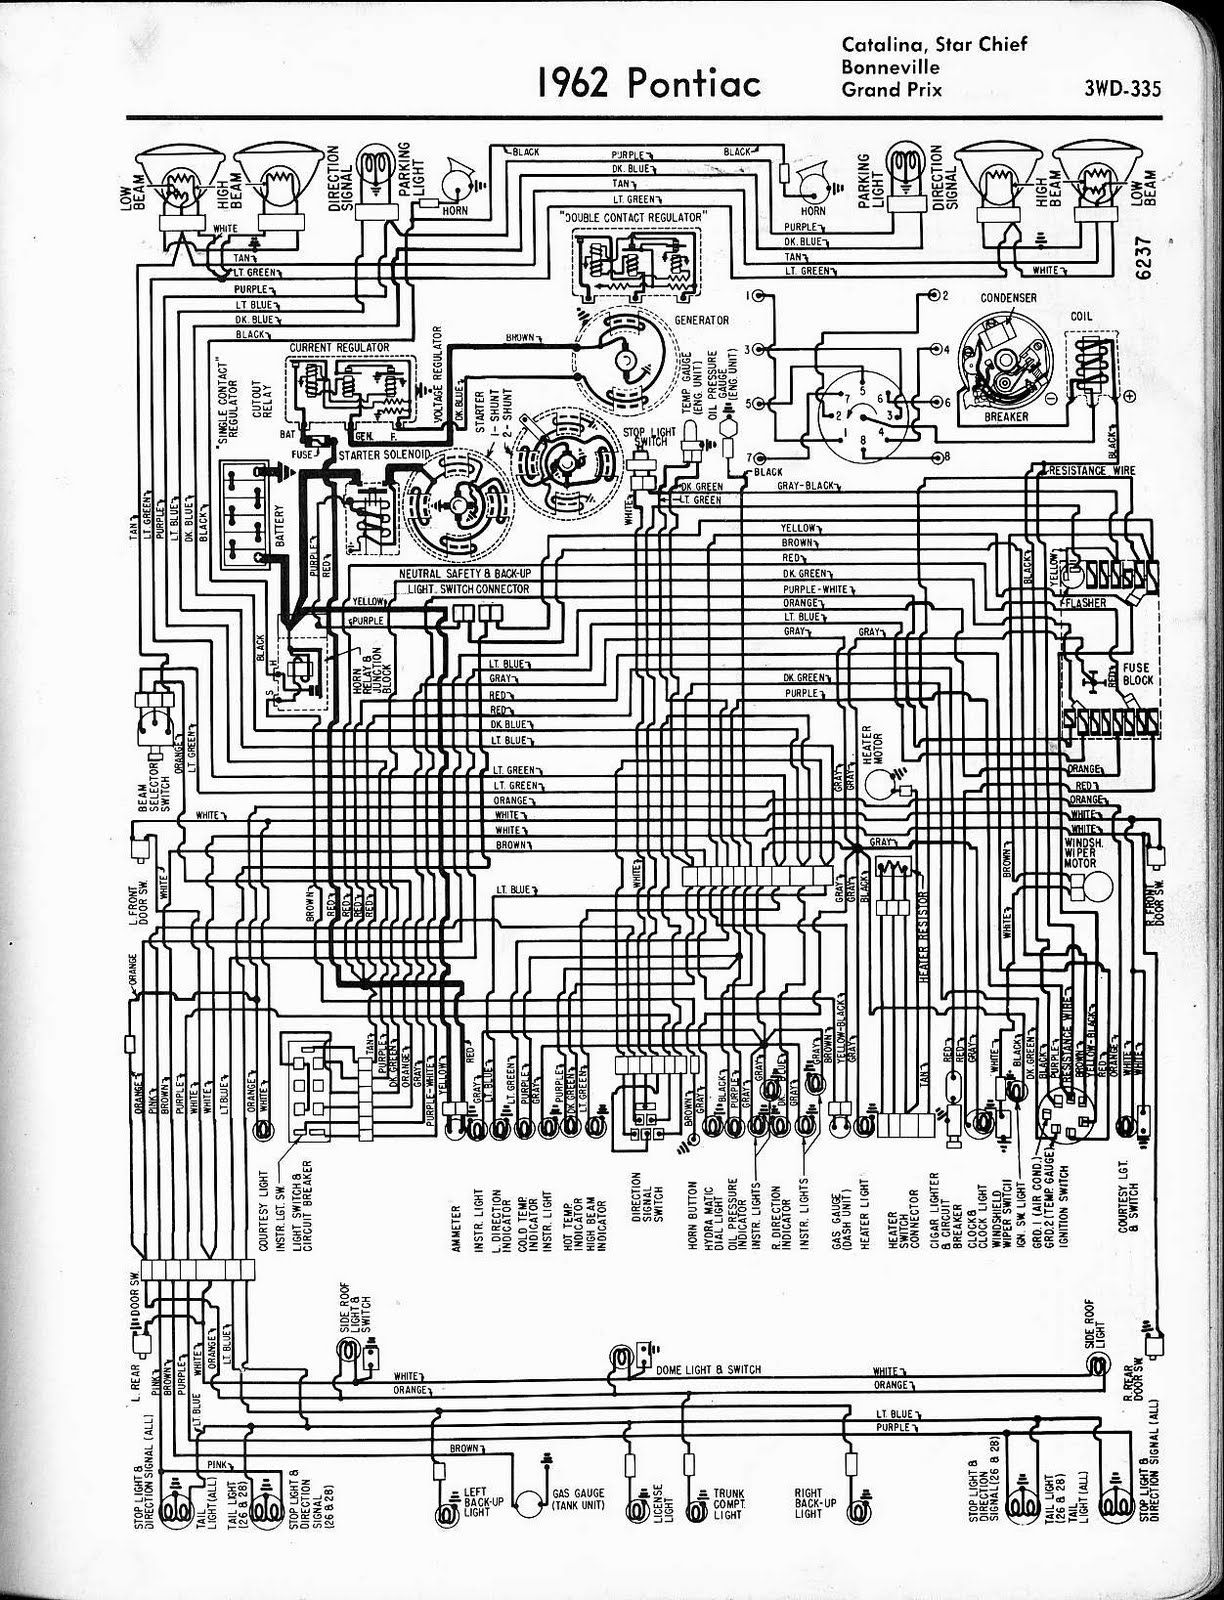 Free Auto Wiring Diagram  1962 Pontiac Catalina  Star